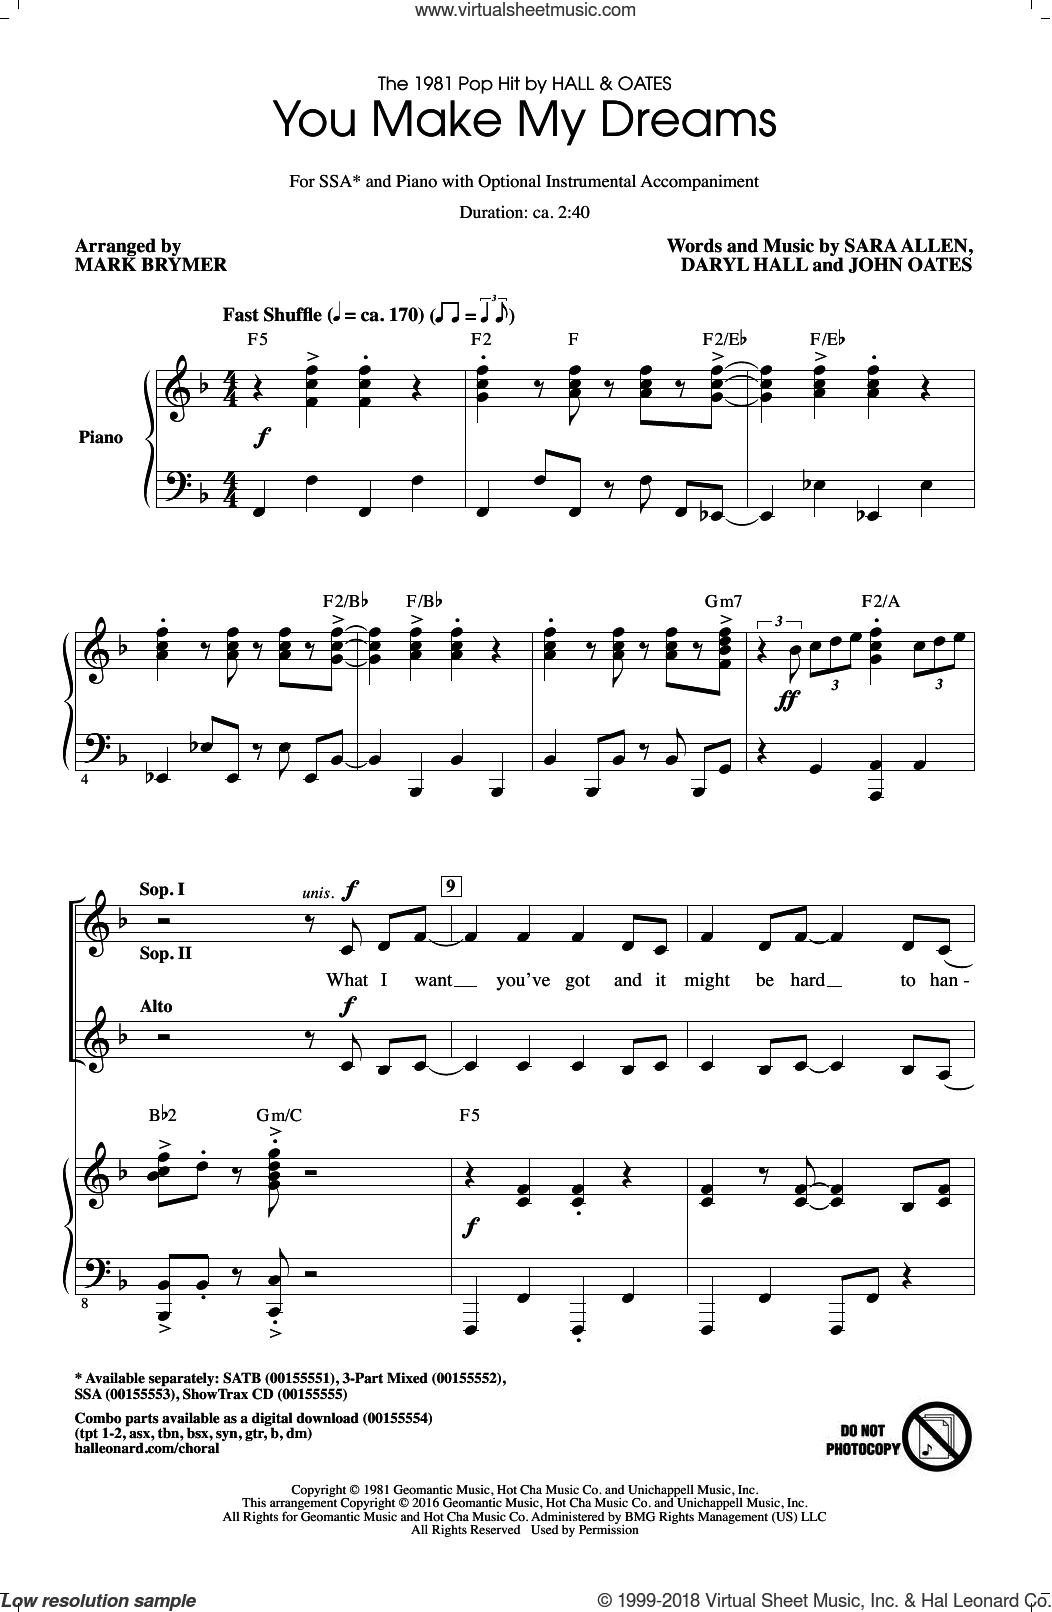 You Make My Dreams sheet music for choir (SSA: soprano, alto) by Mark Brymer, Daryl Hall & John Oates, Hall and Oates, Daryl Hall, John Oates and Sara Allen, intermediate skill level